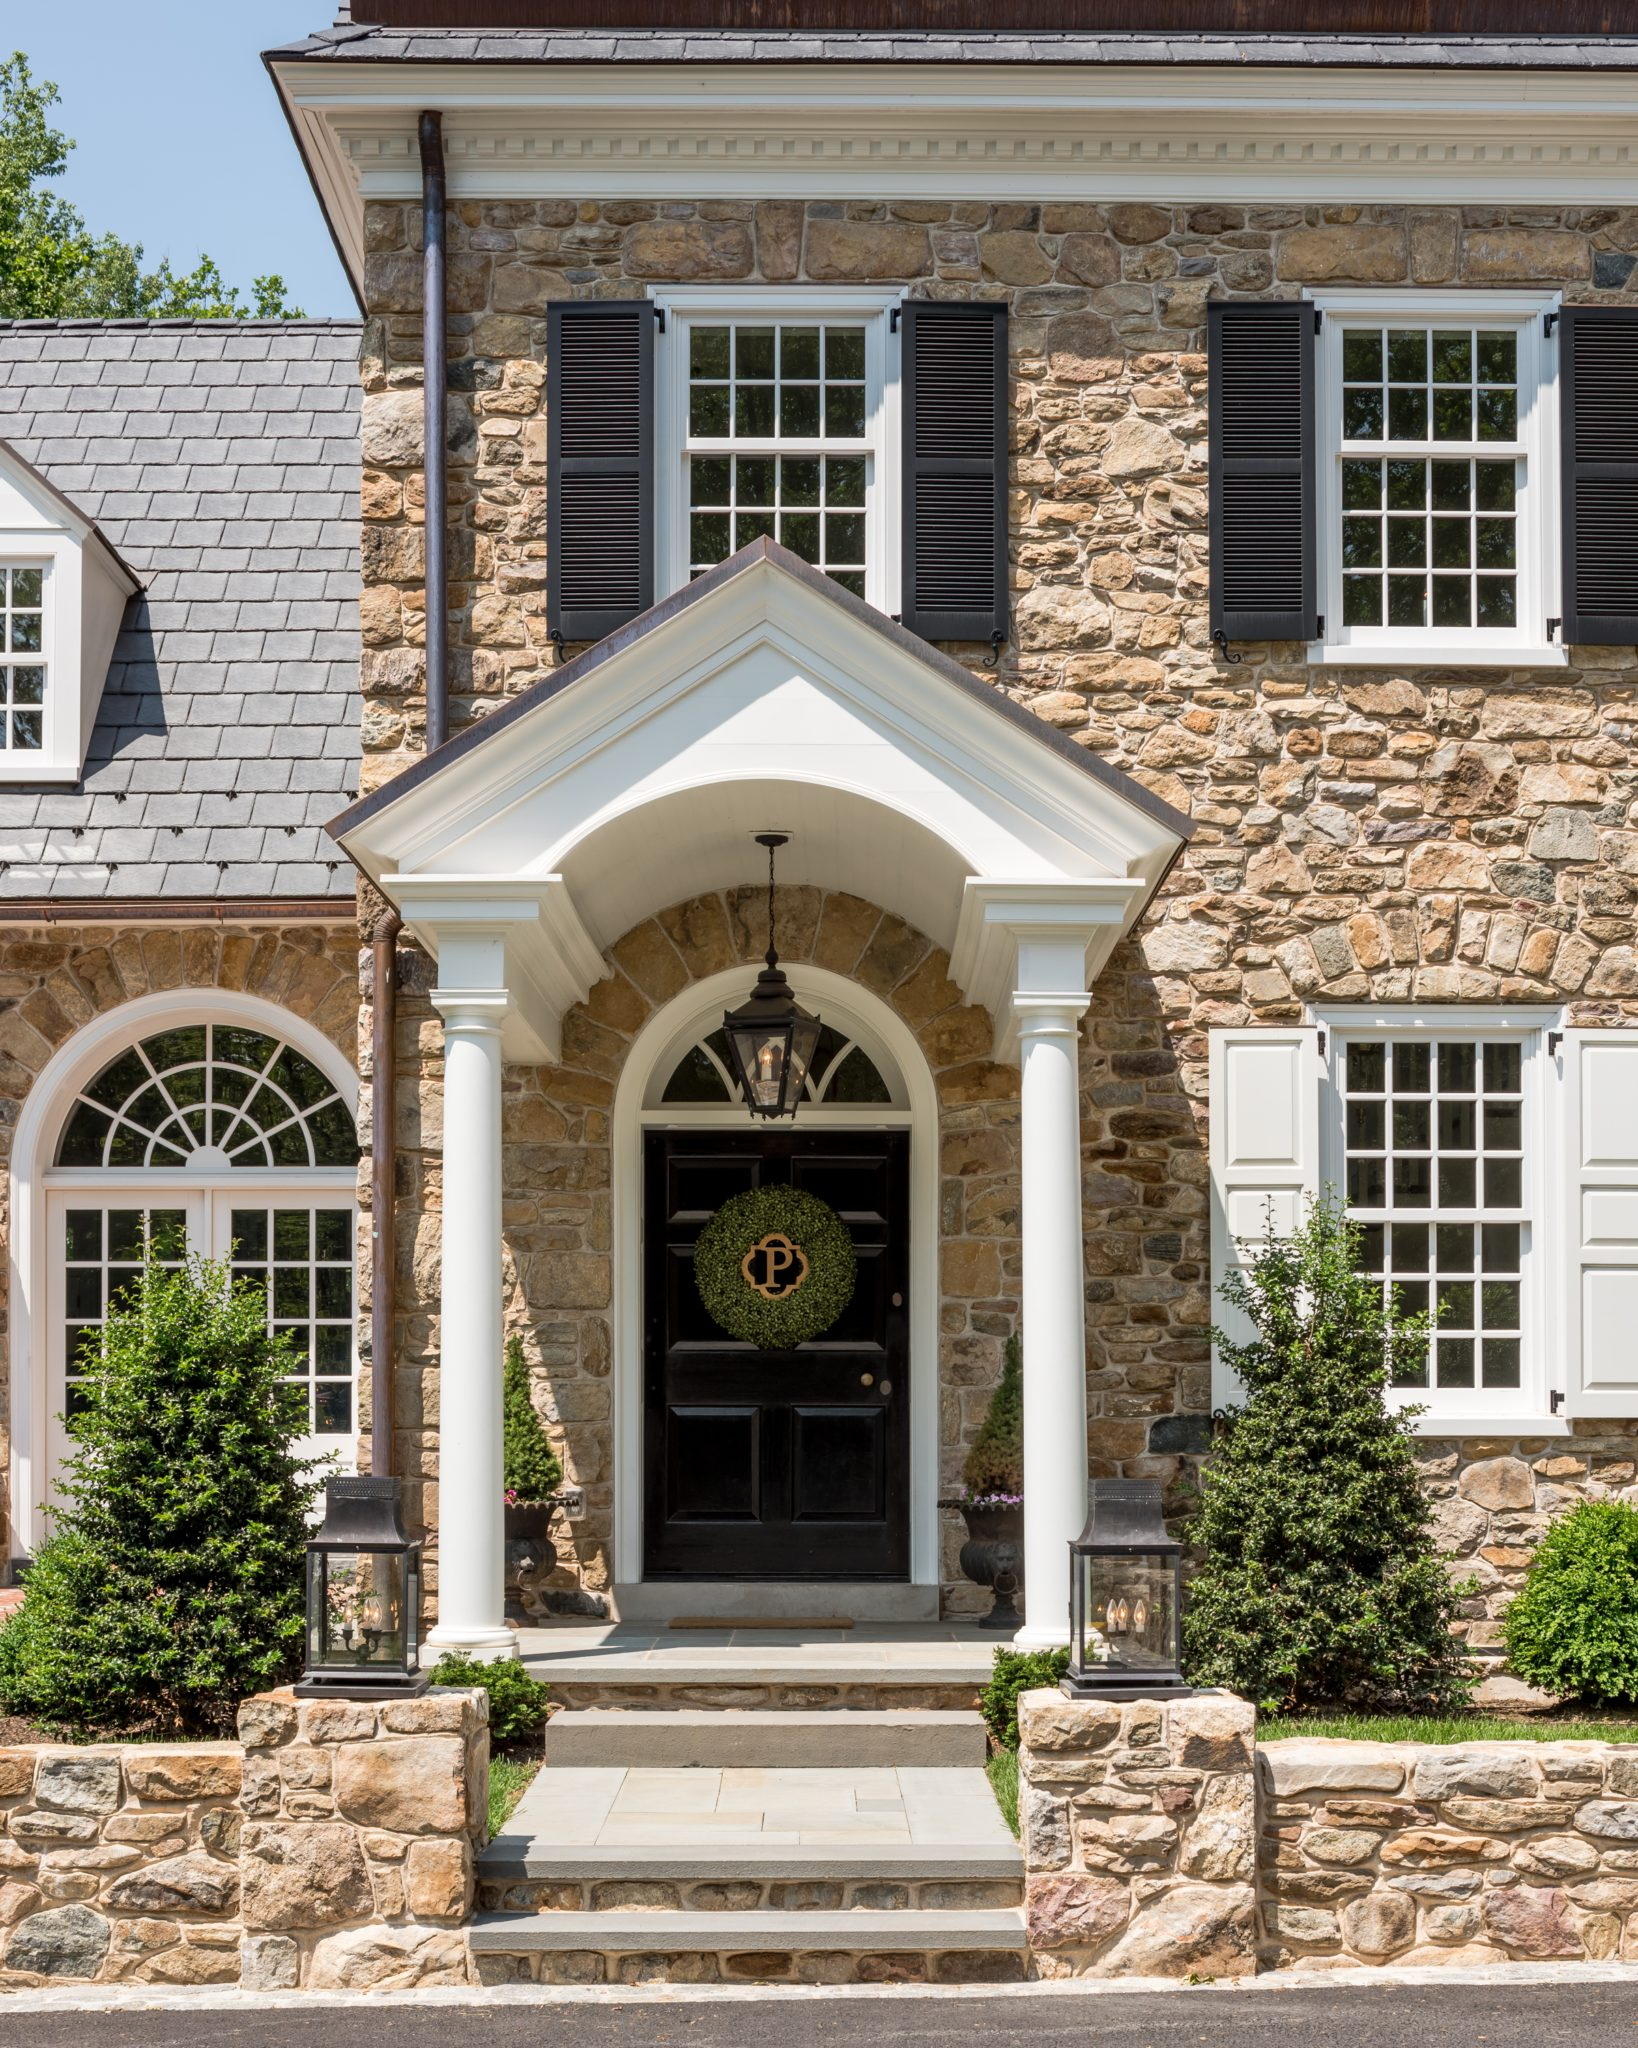 Colonial Revival Pennsylvania Farmhouse with Traditional Portico by Period Architecture